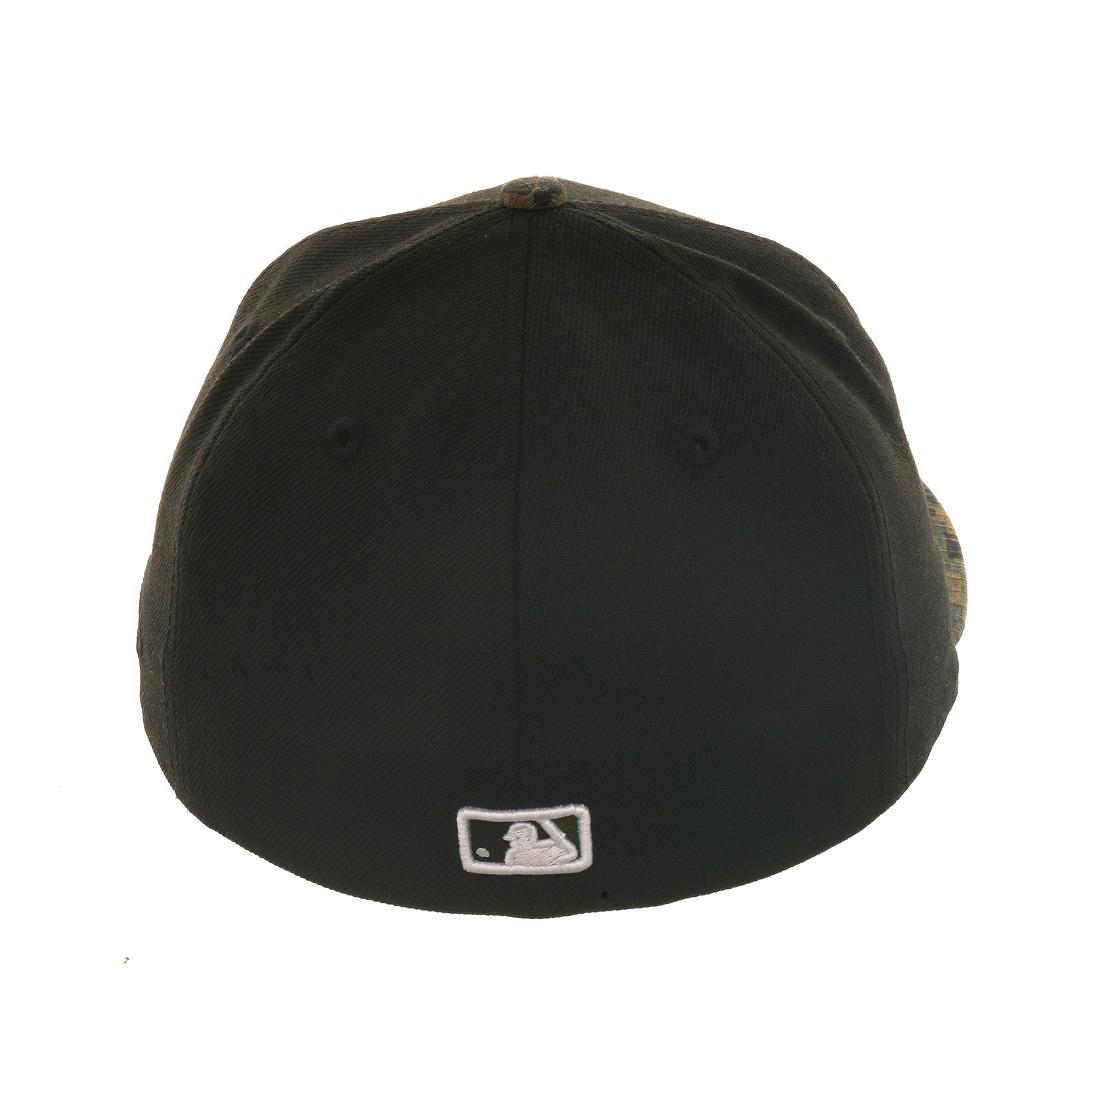 Exclusive New Era 59Fifty San Diego Padres Hat - 2T Black, Digital Camo